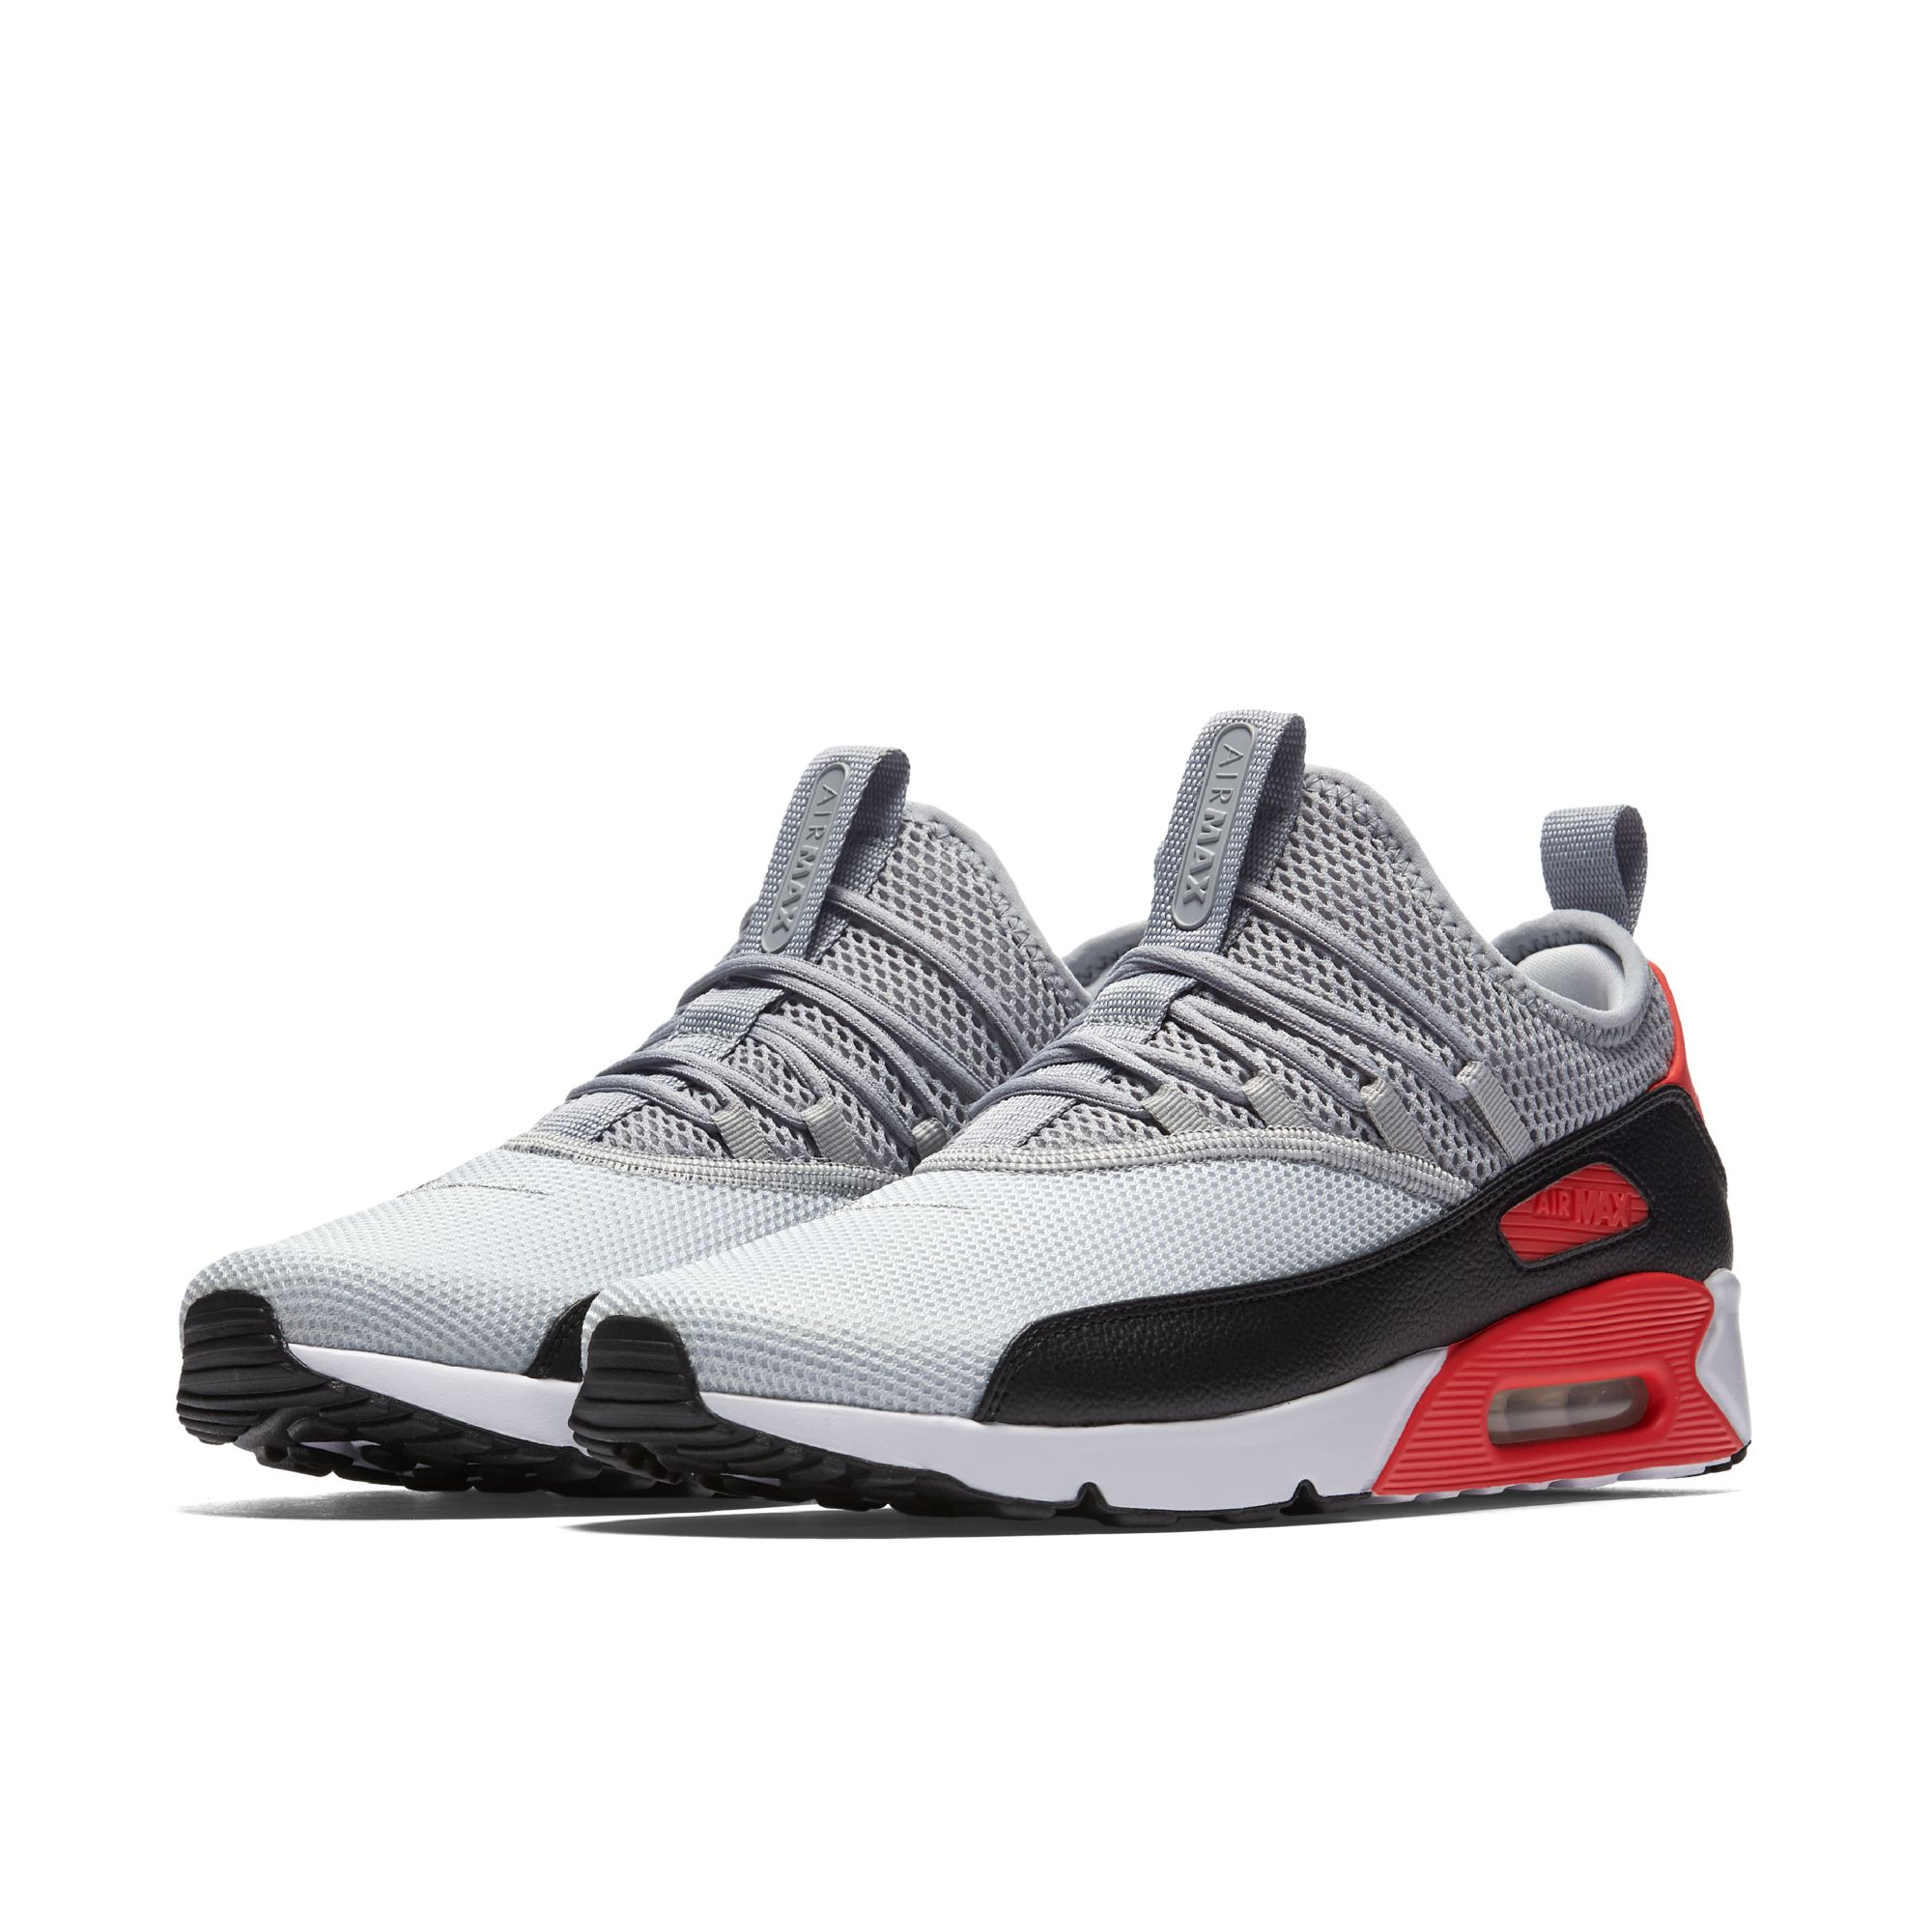 e8d3359ef9 WearTesters - Page 111 of 994 - Sneaker Performance Reviews ...